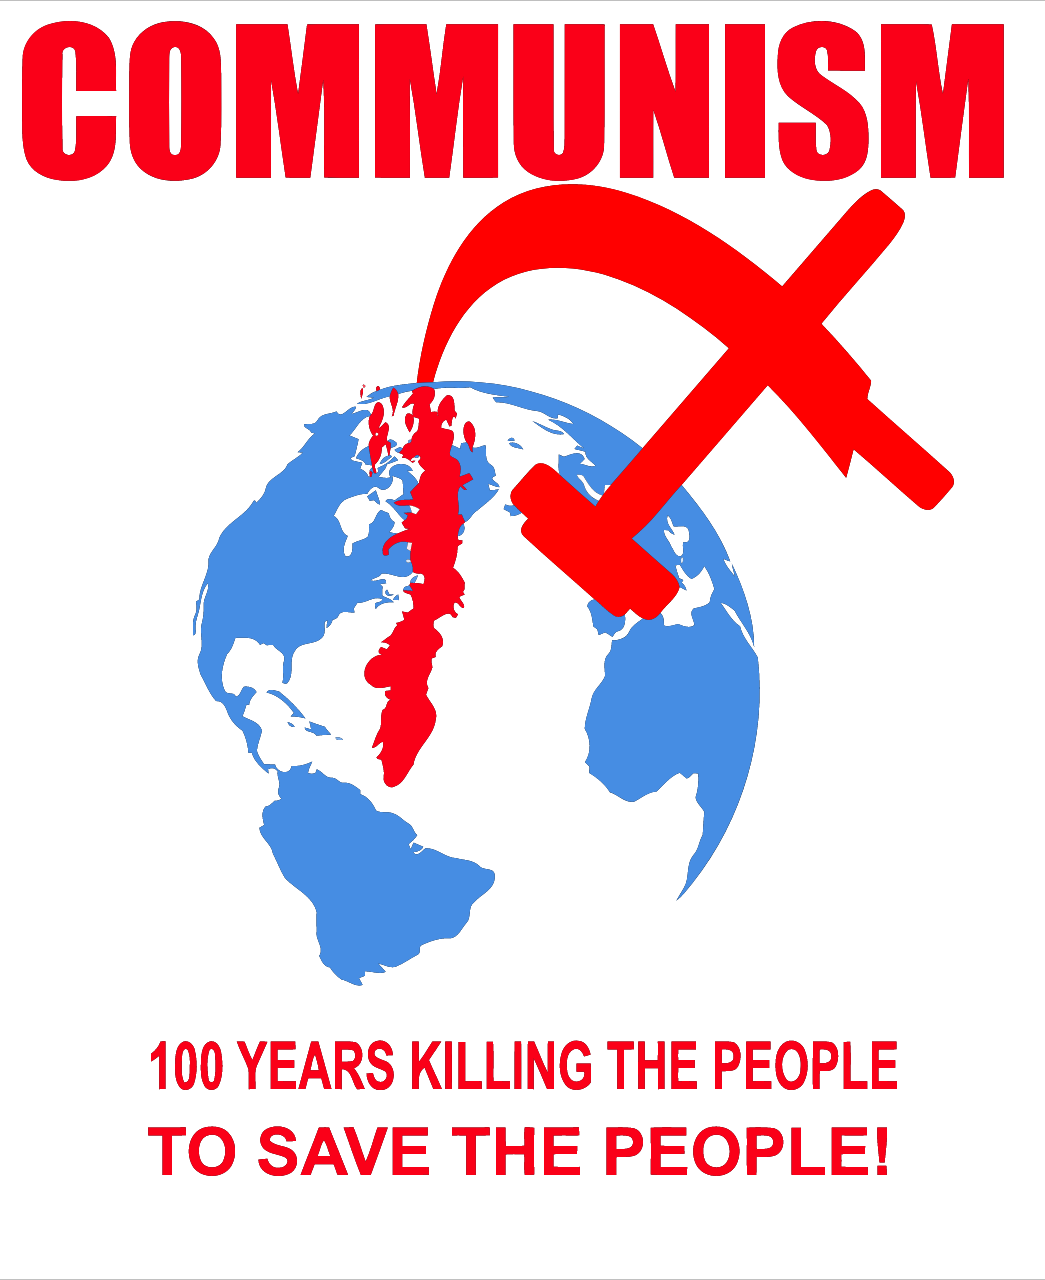 history and origins of communism A brief history of the communist movement communism was originally the political thought that concentrated on the liberation of the proletariat, or the working class.